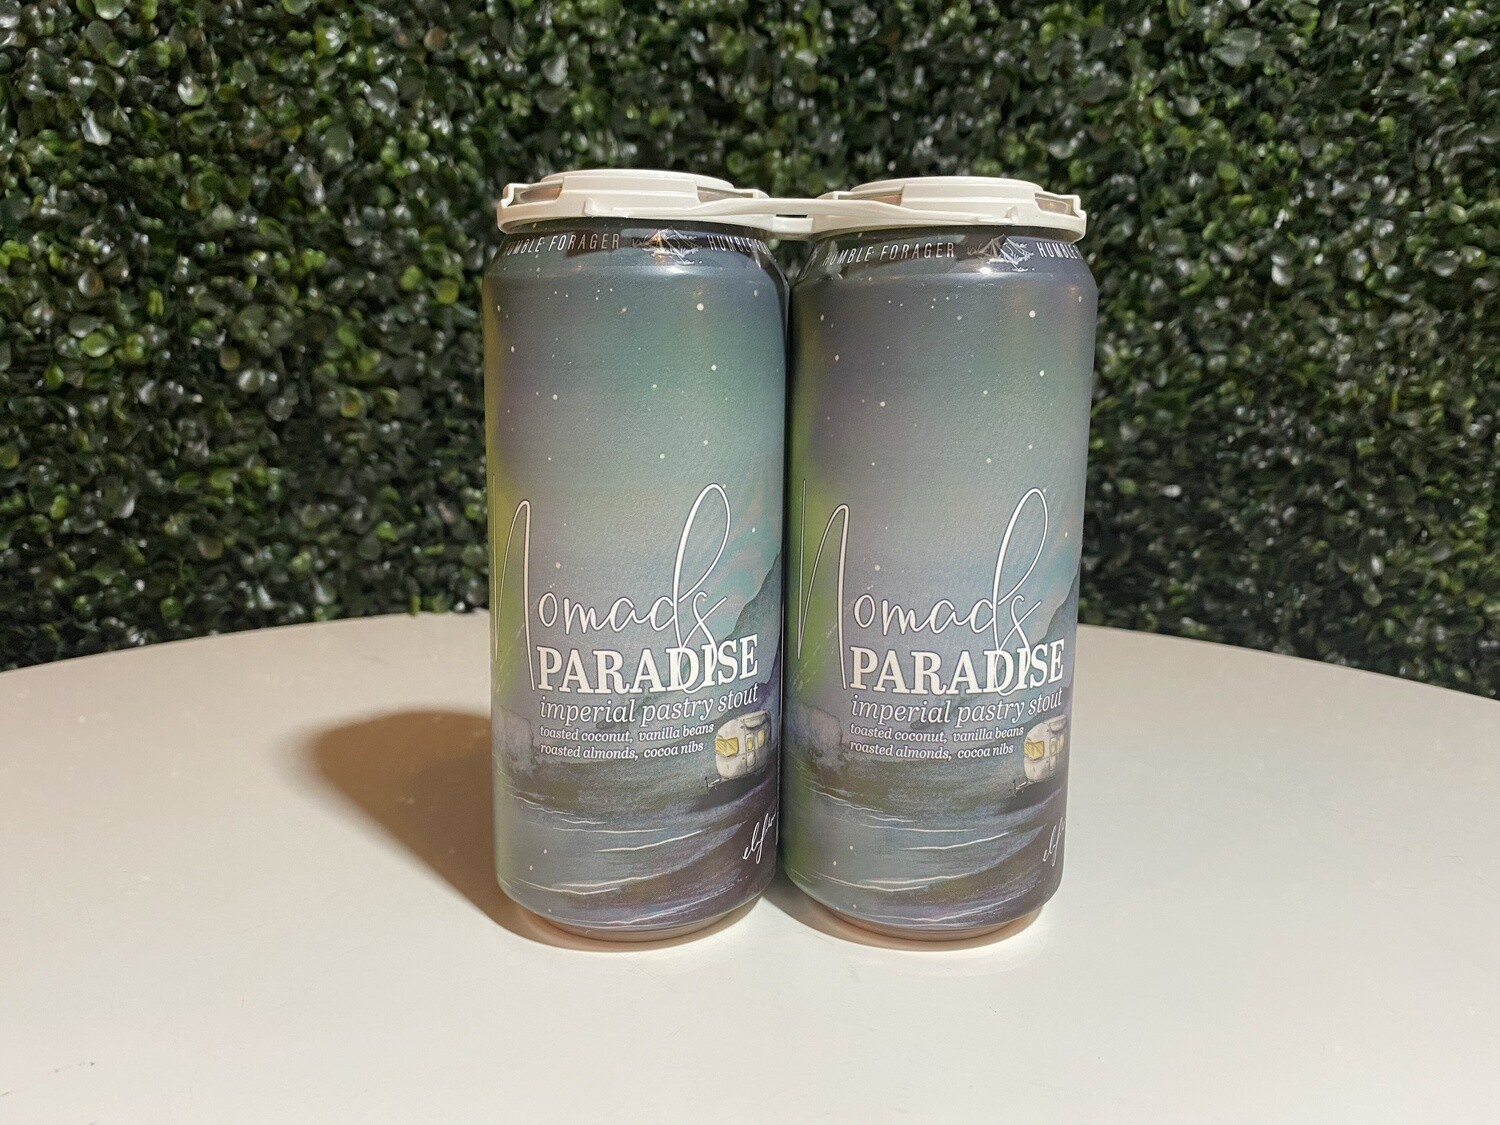 Humble Forager - Nomad's Paradise - Pastry Stout - 12% ABV - 2 Pack